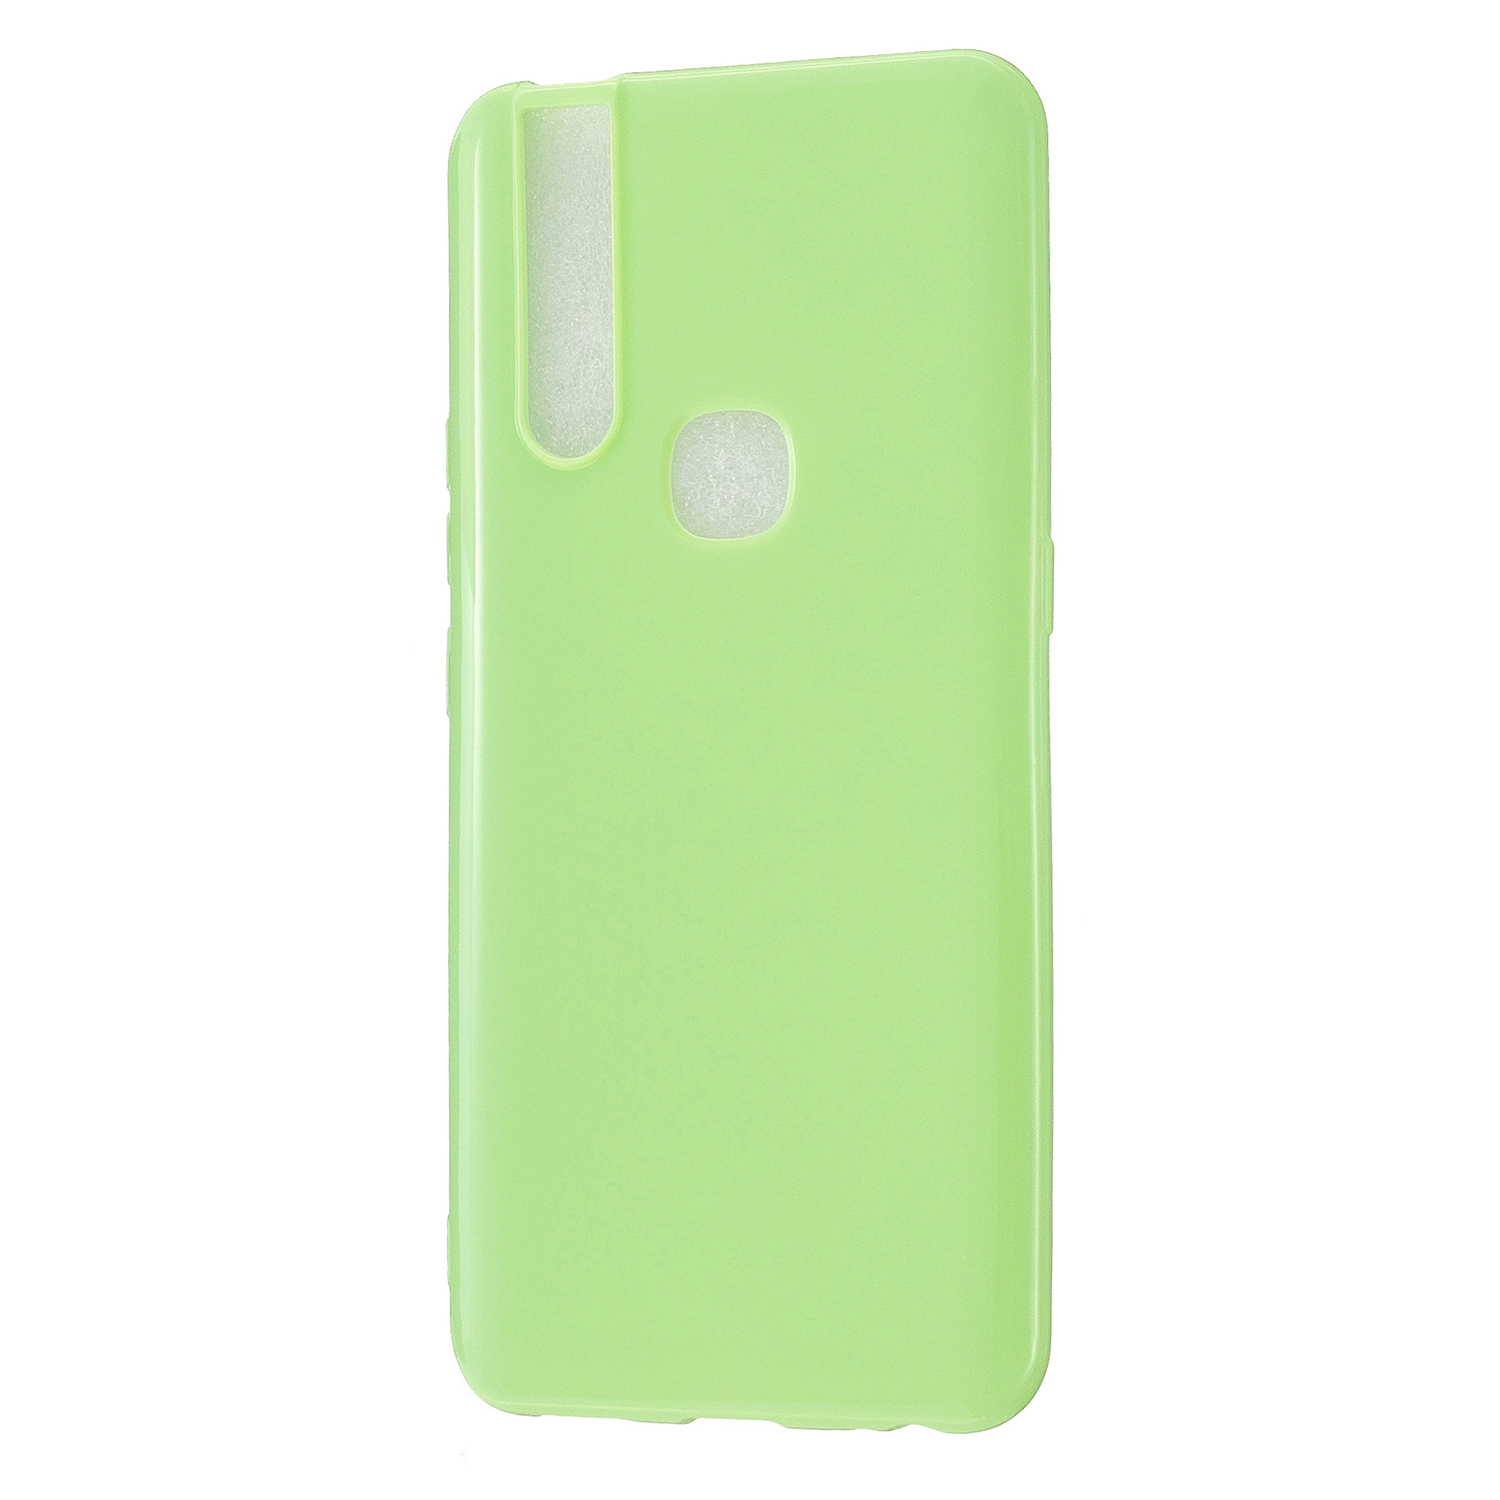 For VIVO V15/V15 Pro Cellphone Cover Slim Thin TPU Case Shock Absorption Mobile Phone Protective Cover  Fluorescent green